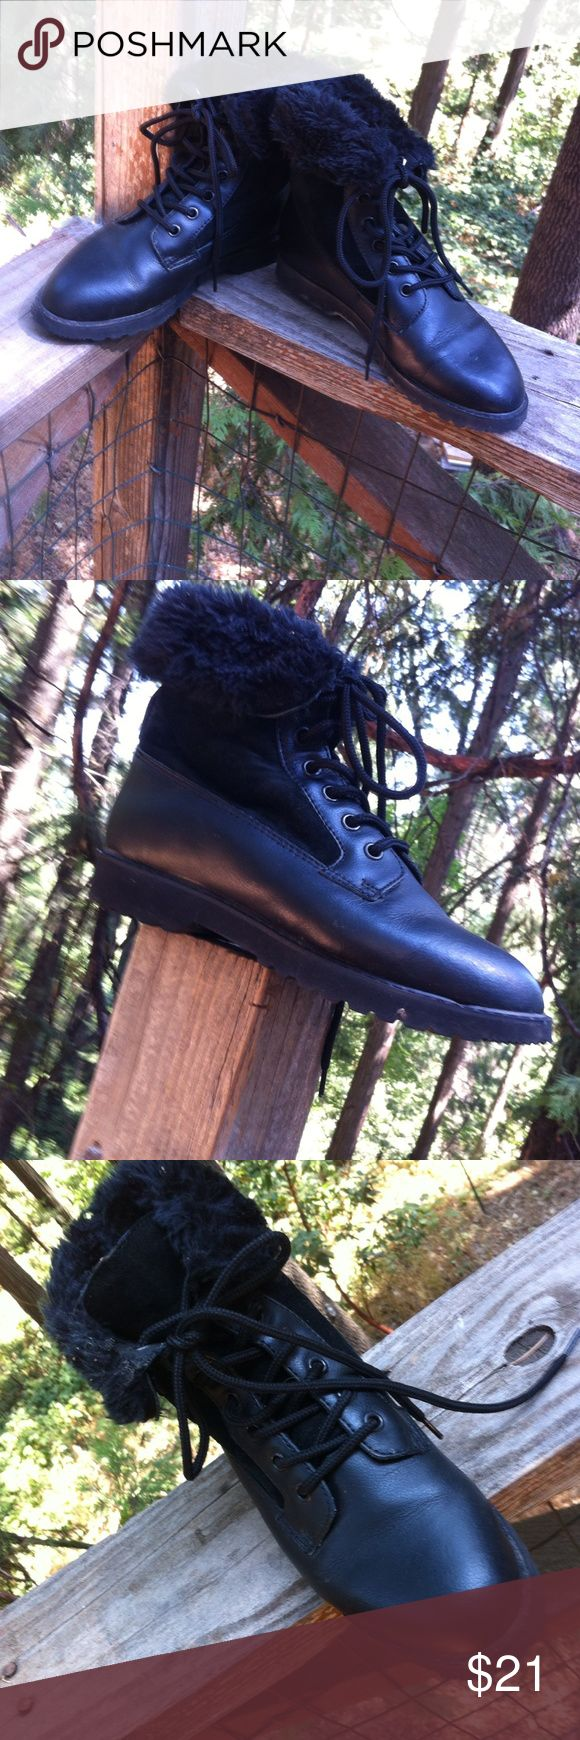 Merona black hiking boots Me roan black leatherette and swede hiking boots with fur at ankles accent and lace up front. A 'Kristens Find'  posh on girlfriend;) Merona Shoes Lace Up Boots